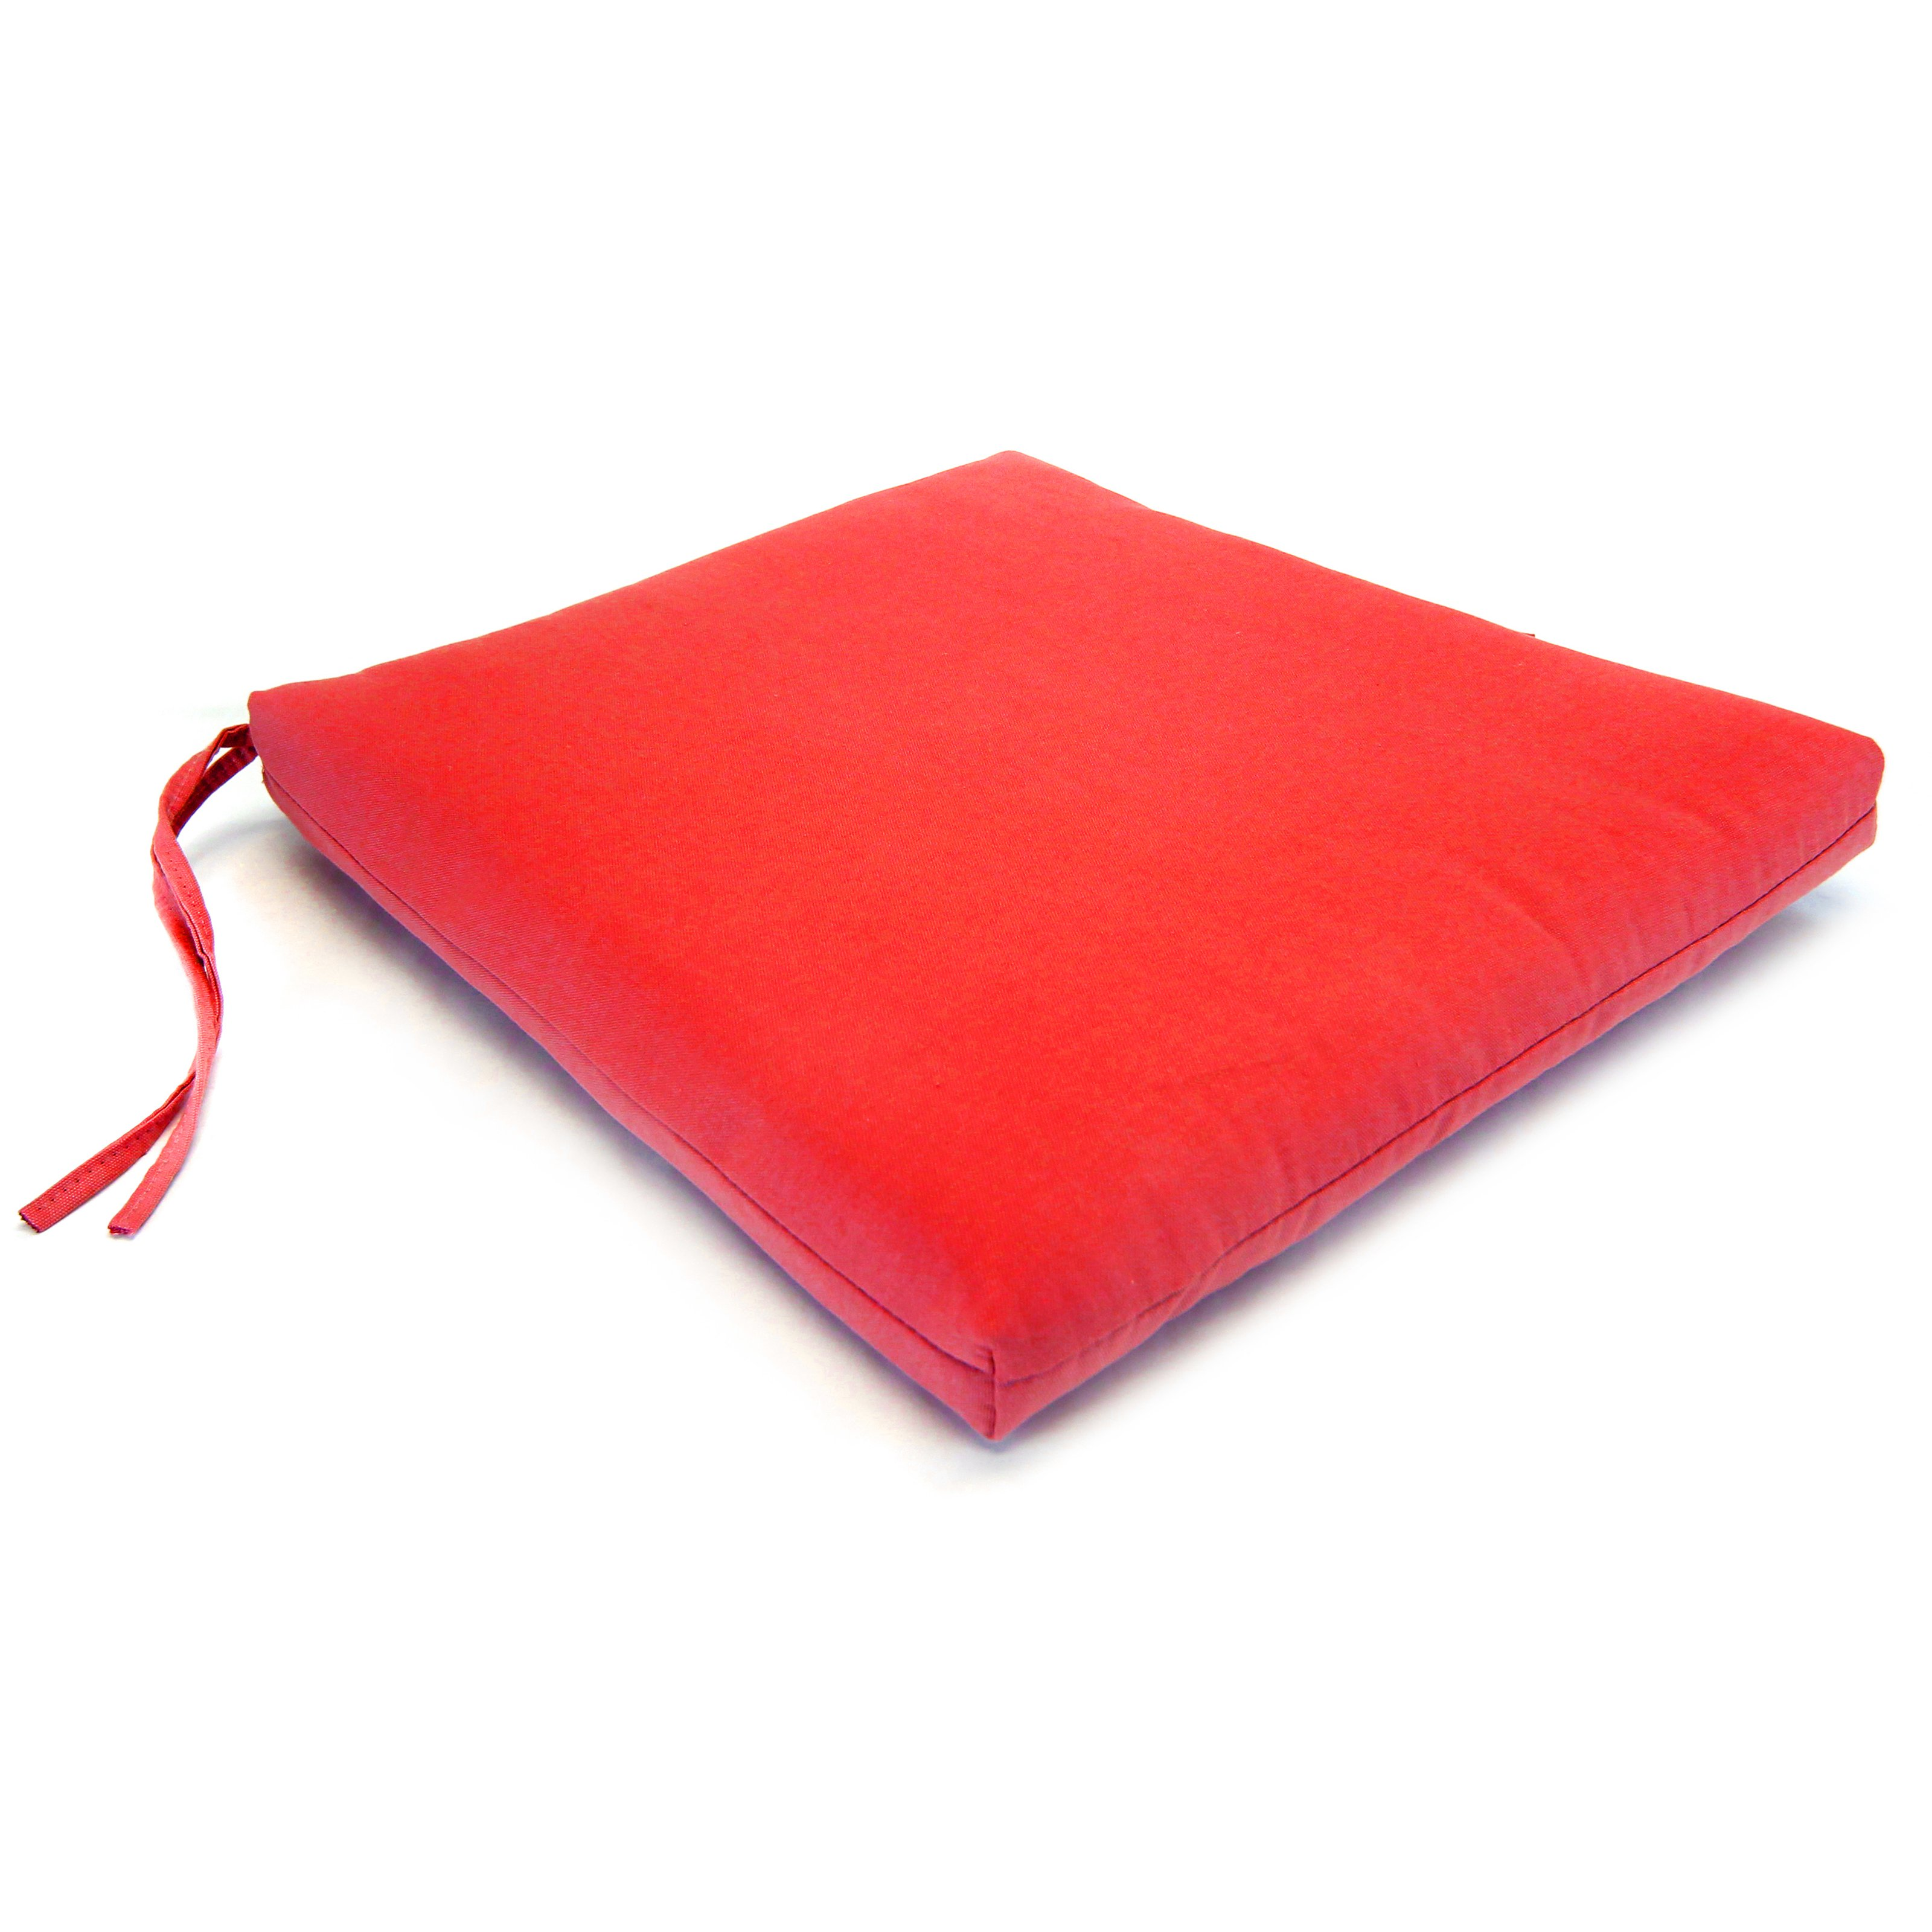 Woodard Capri Sunbrella Seat Cushion